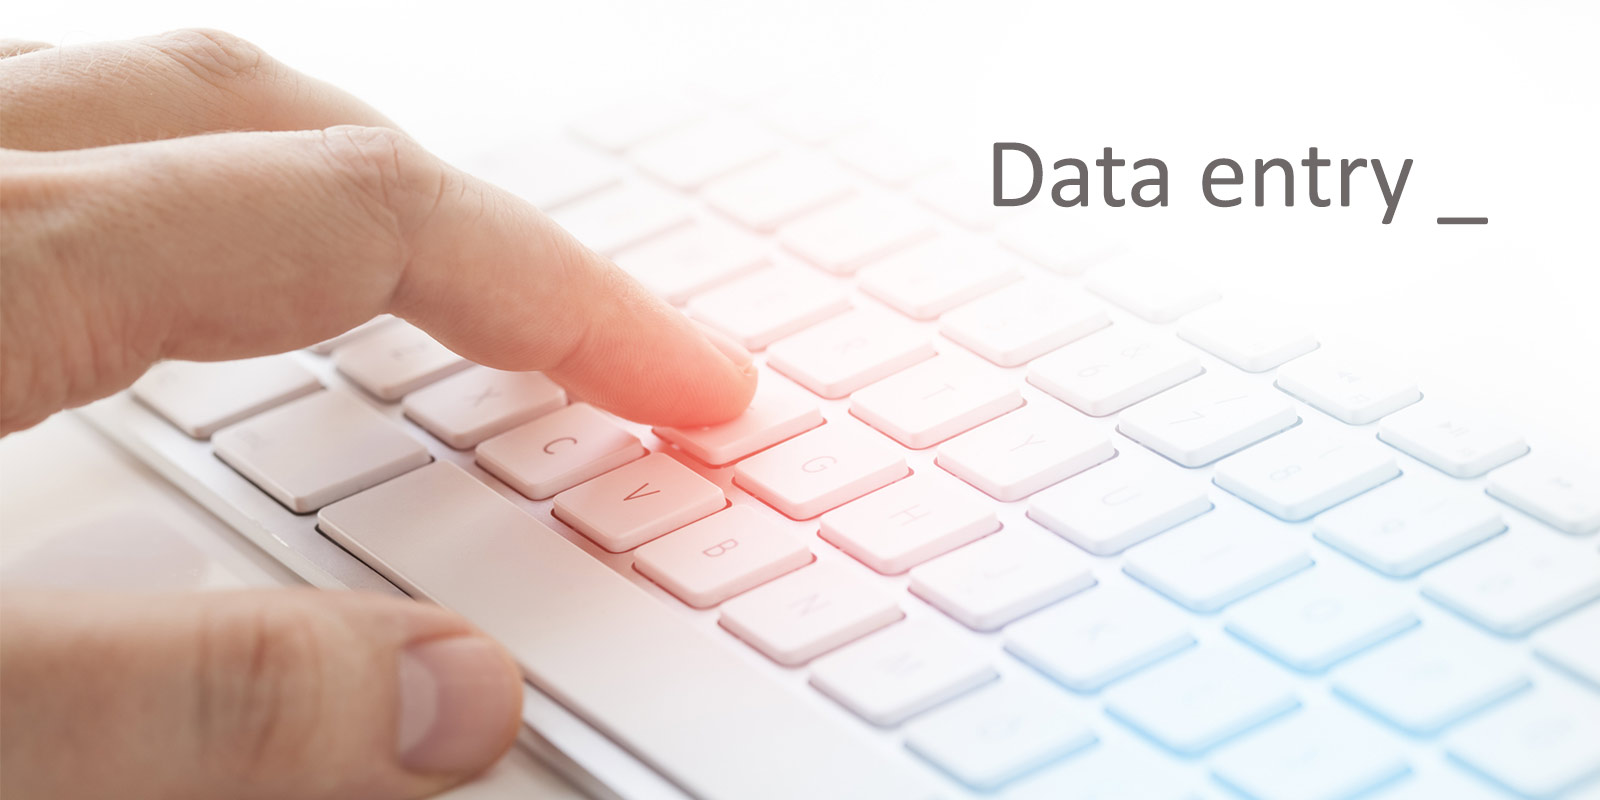 What Is Data Entry? Your Questions Answered